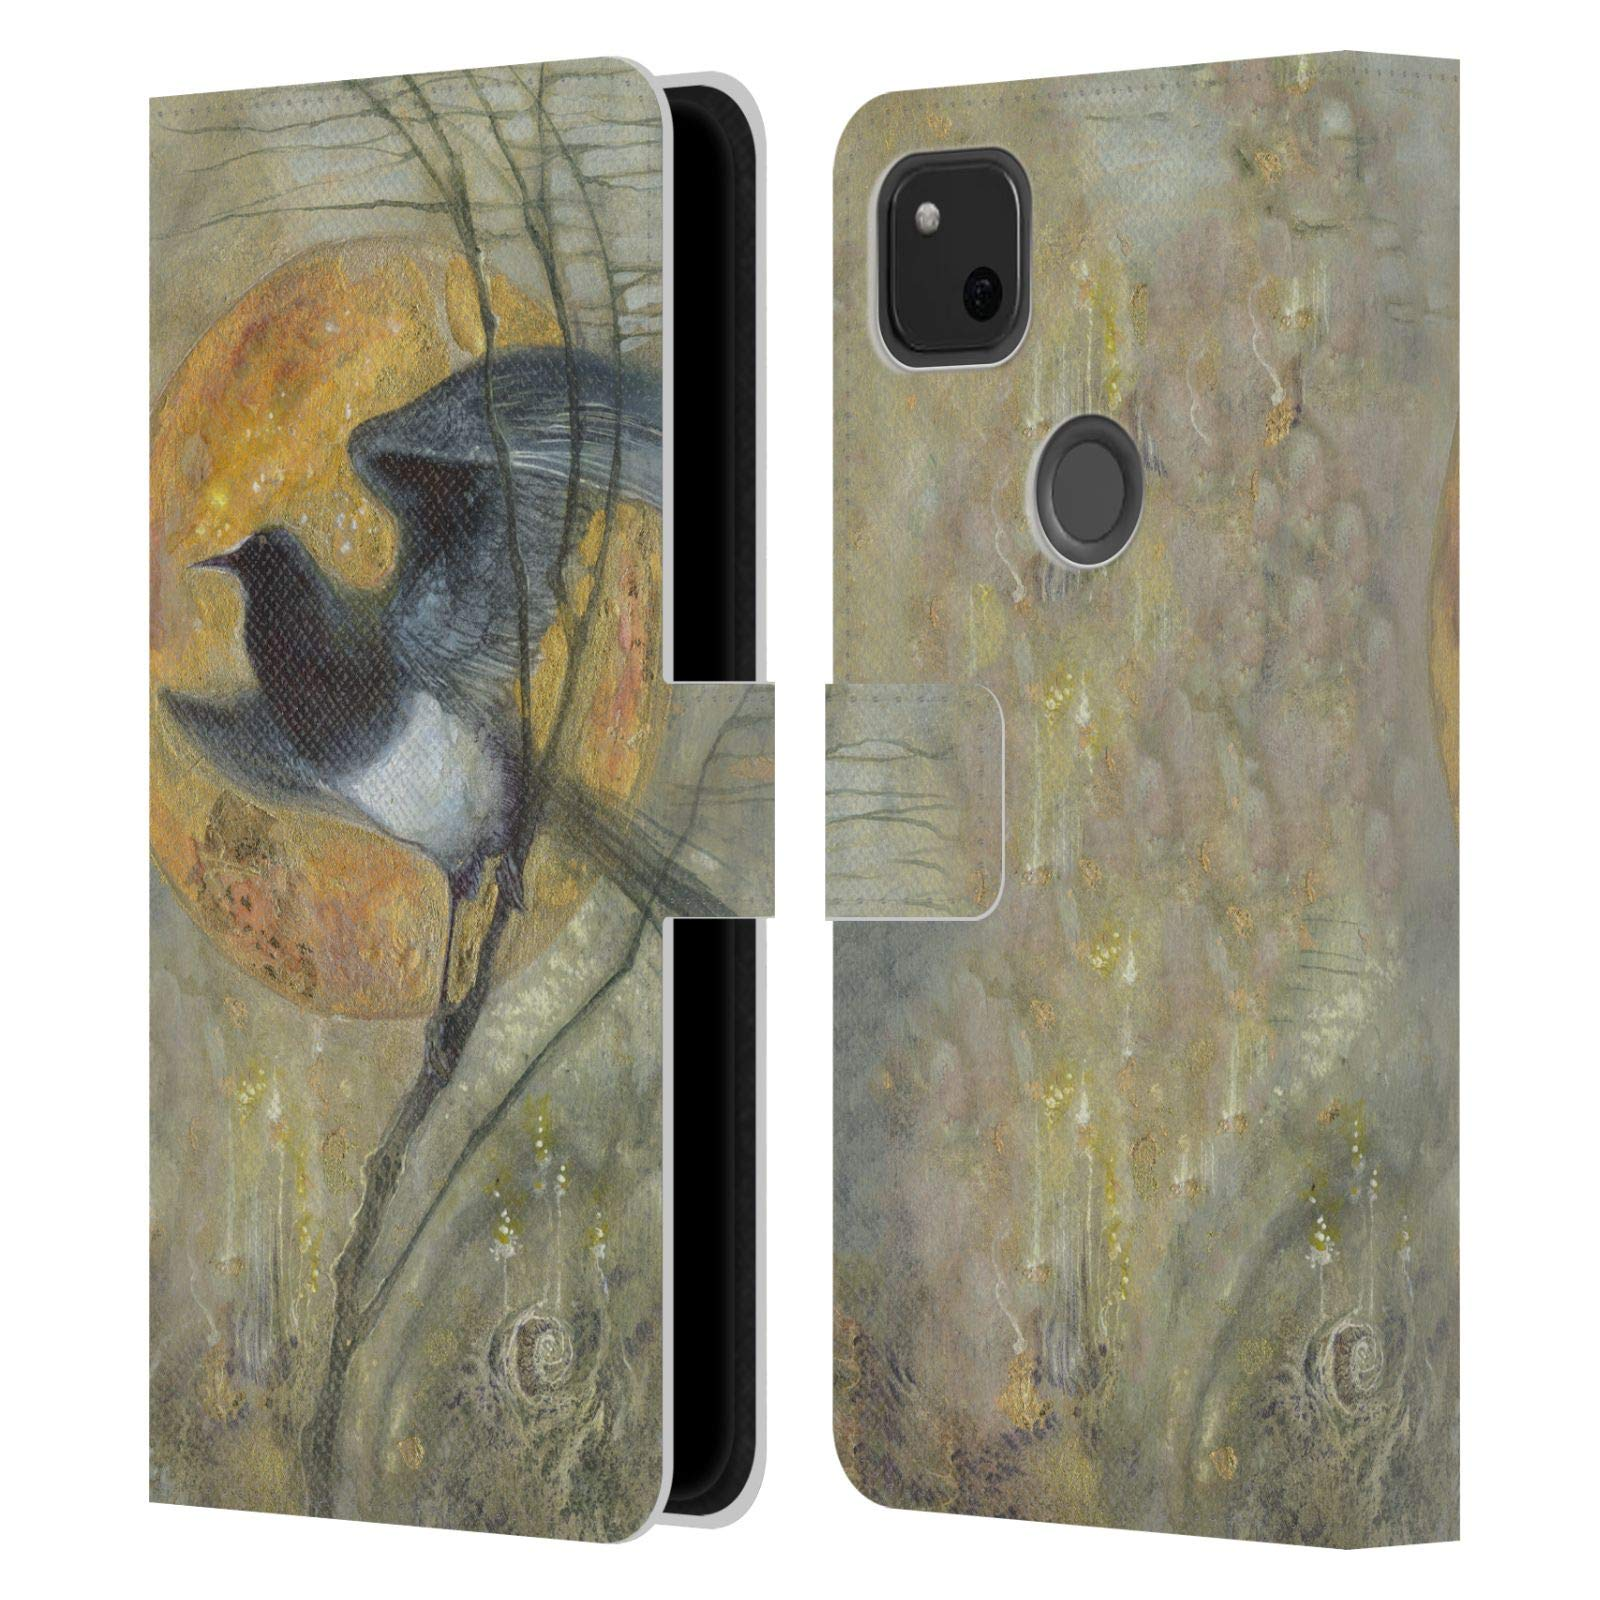 Head Case Designs Officiel Stephanie Law Pie Rêves Étranges Coque en Cuir à Portefeuille Compatible avec Google Pixel 4a